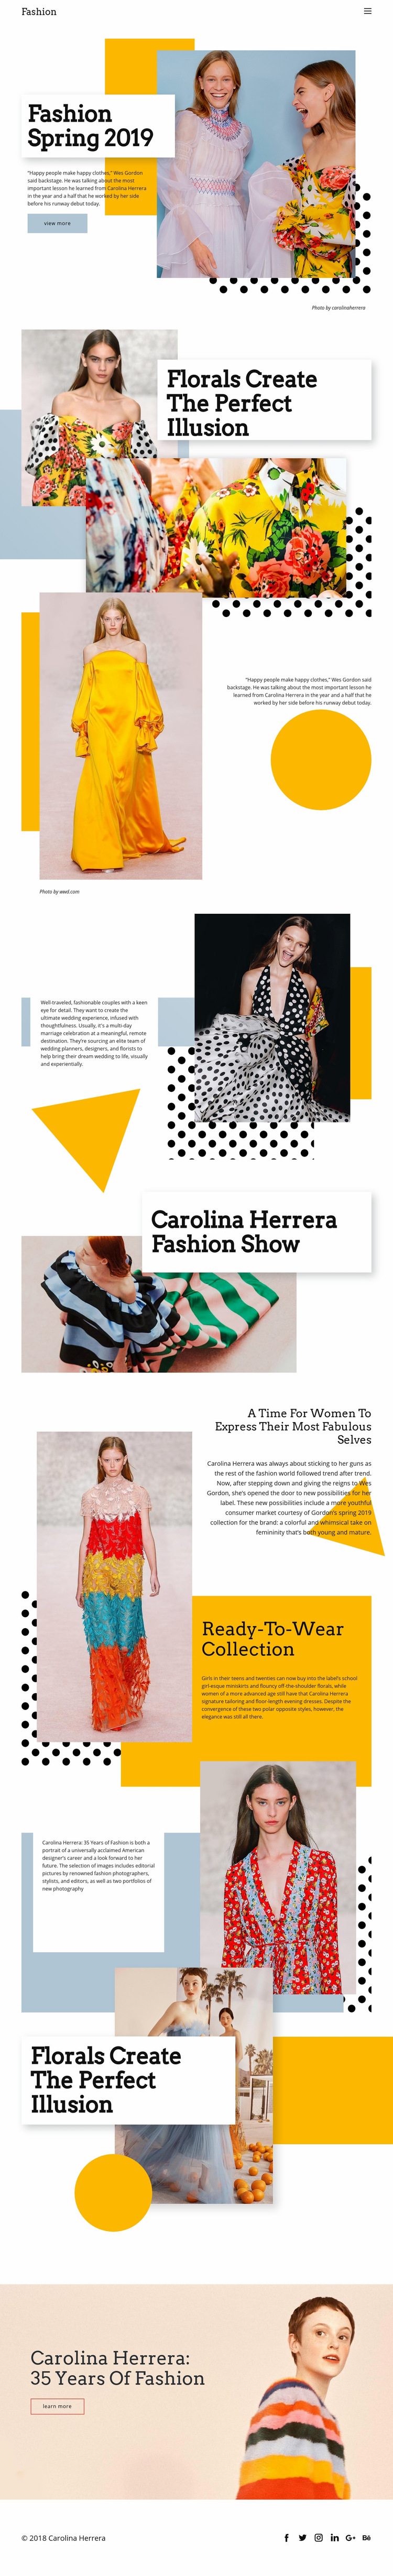 Fashion Spring Collection Web Page Design